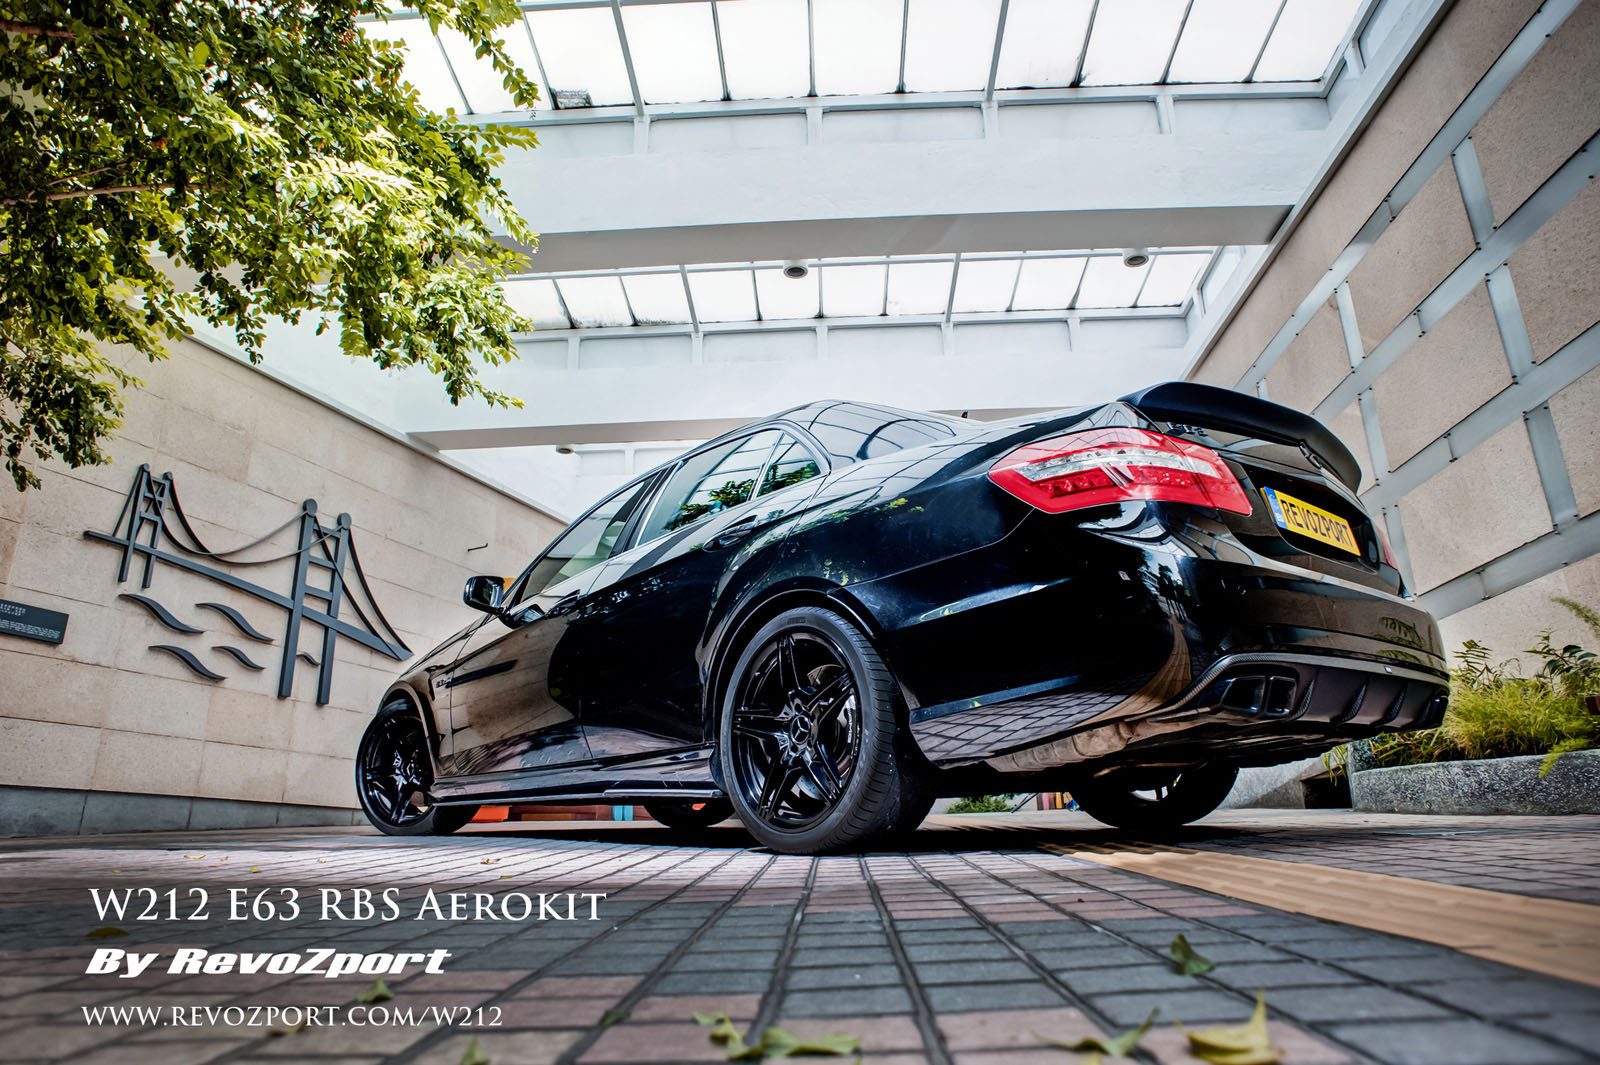 2013 mercedes benz e63 amg by revozport picture 508053 for 2013 mercedes benz e63 amg